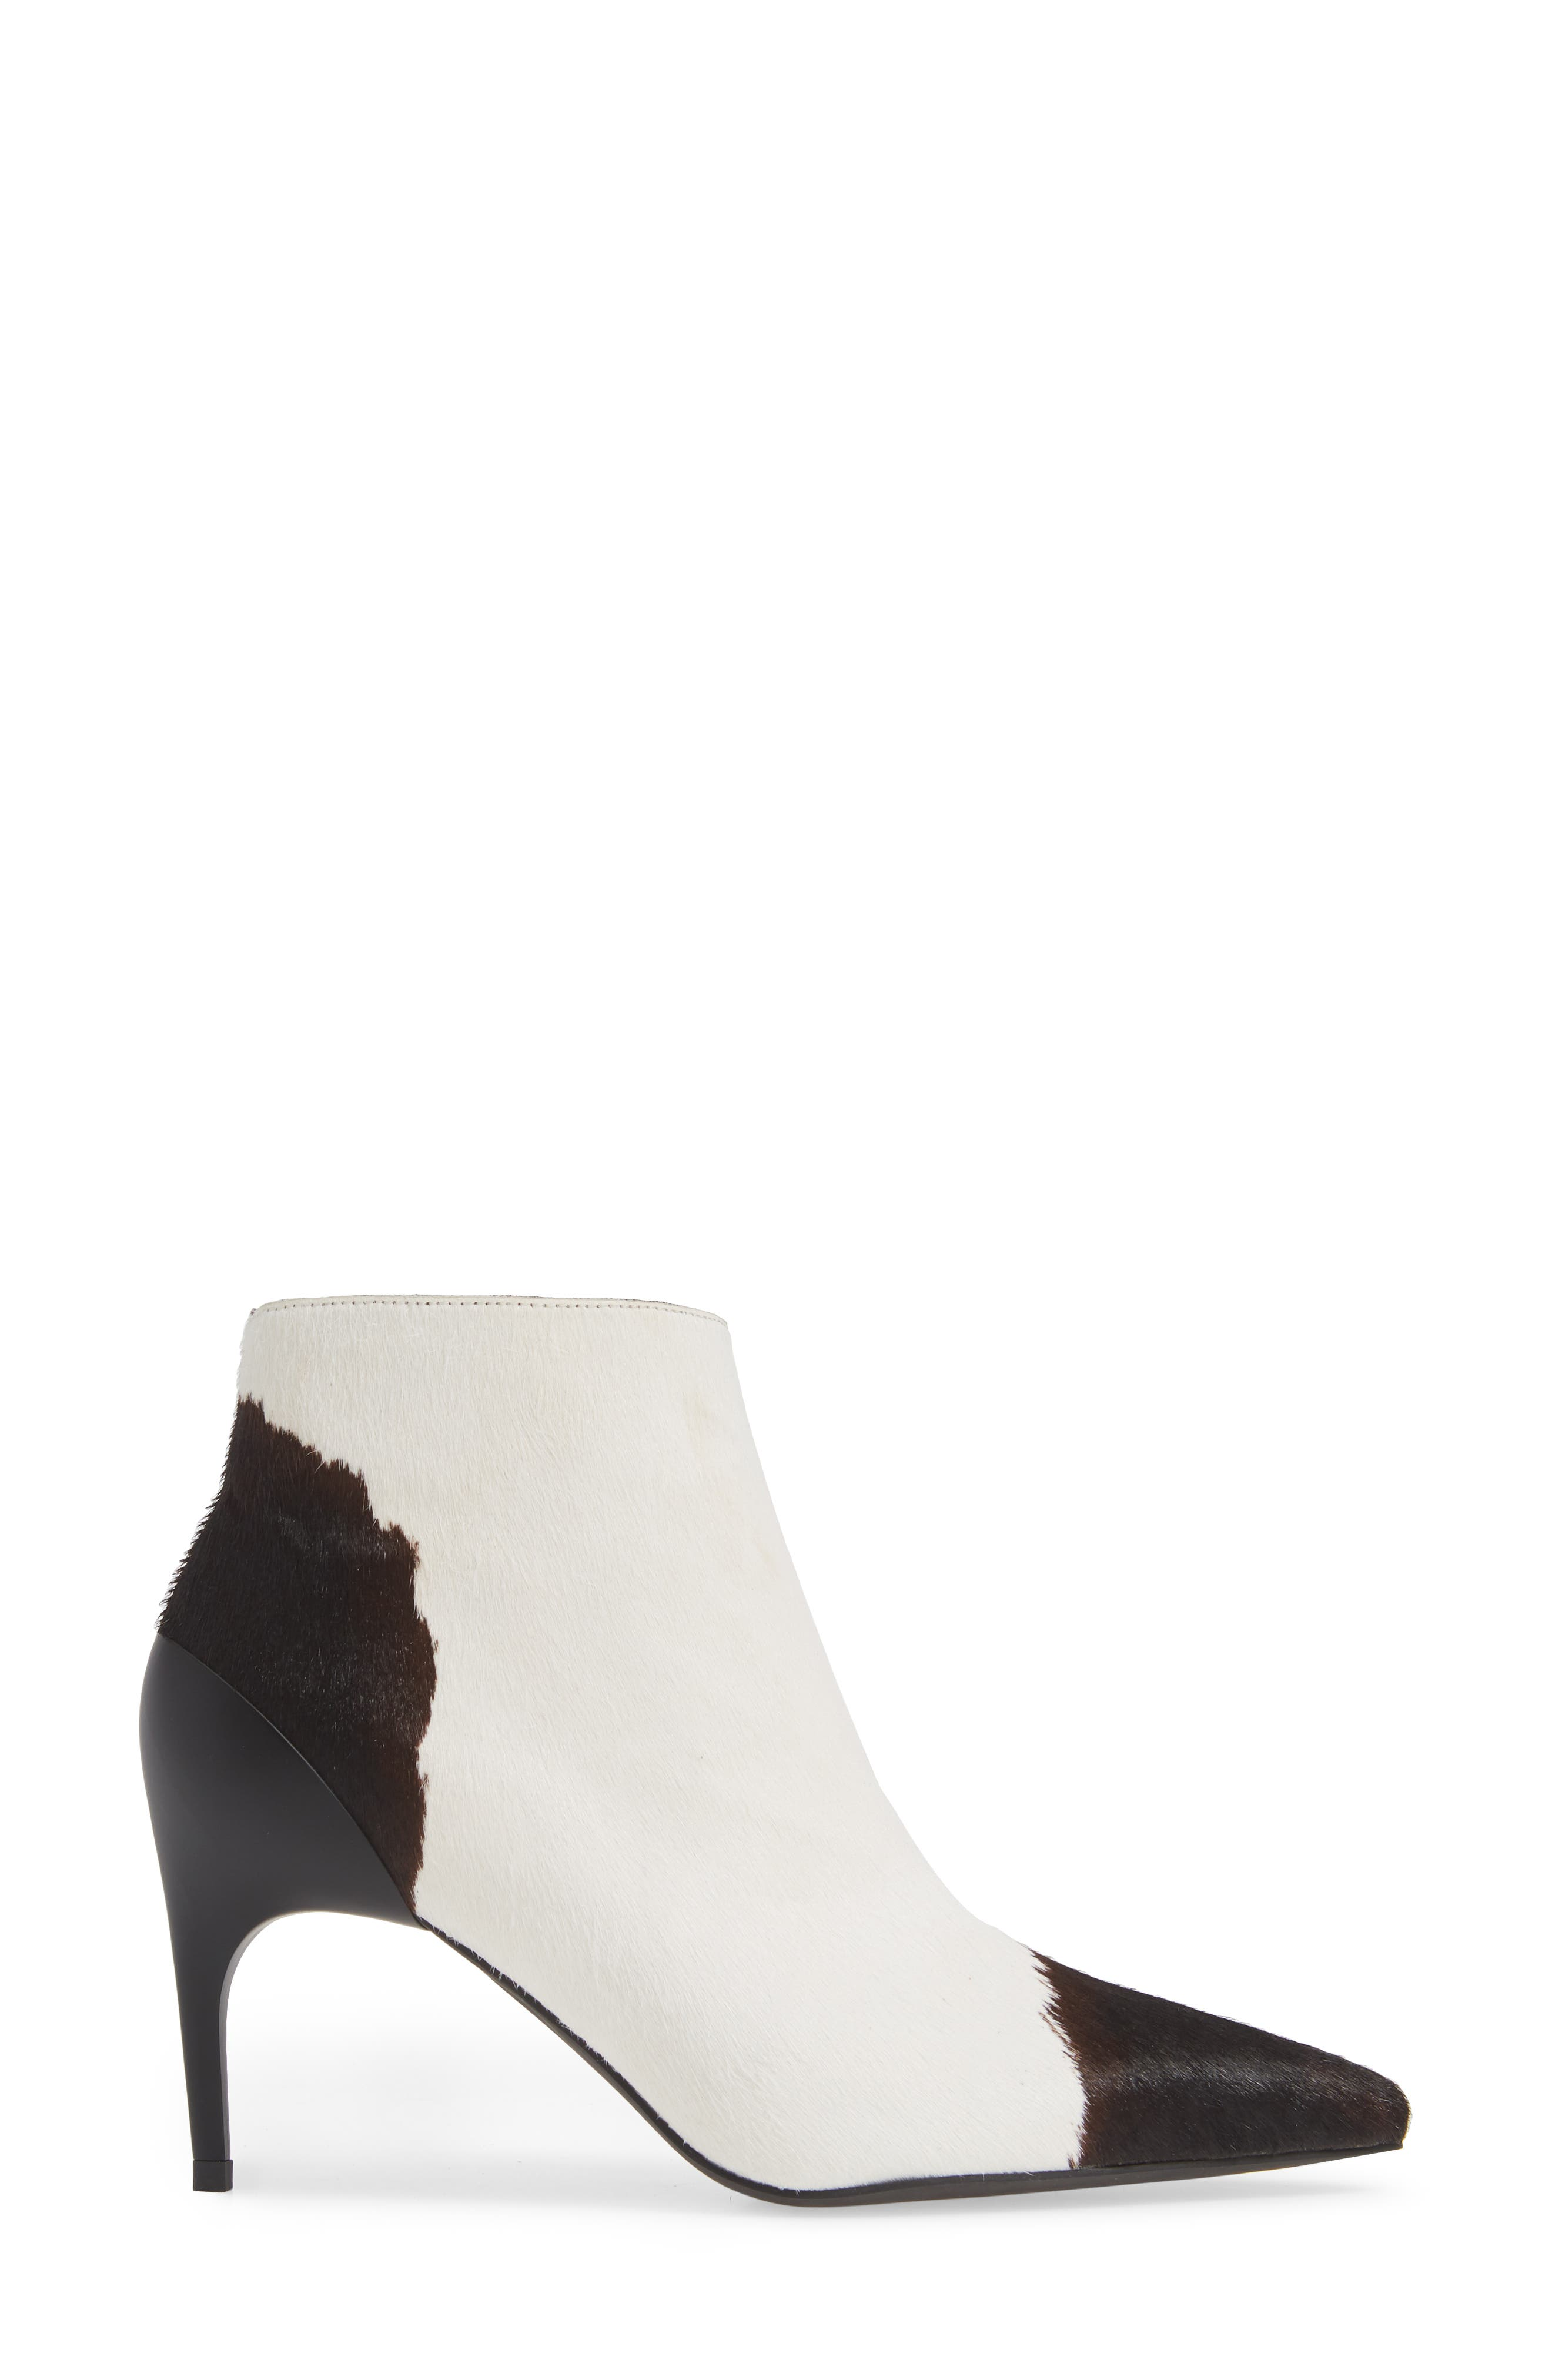 JEFFREY CAMPBELL,                             Barbell-F Genuine Calf Hair Bootie,                             Alternate thumbnail 3, color,                             001